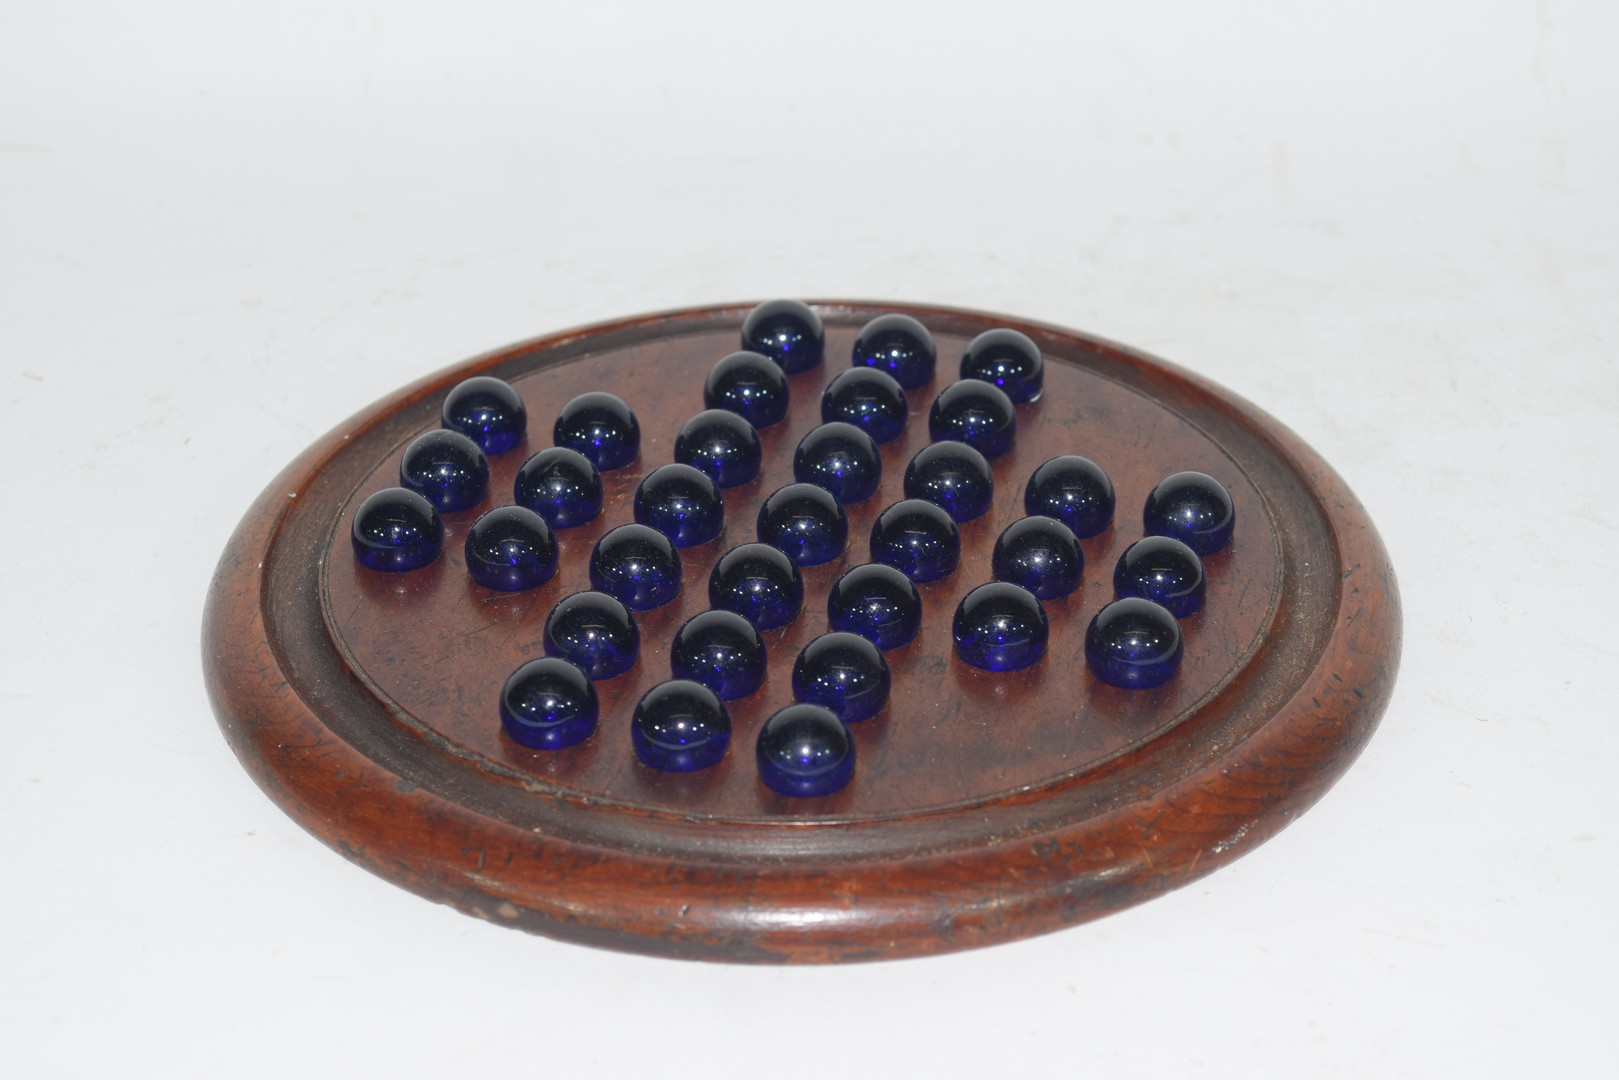 Solitaire Board & Marbles